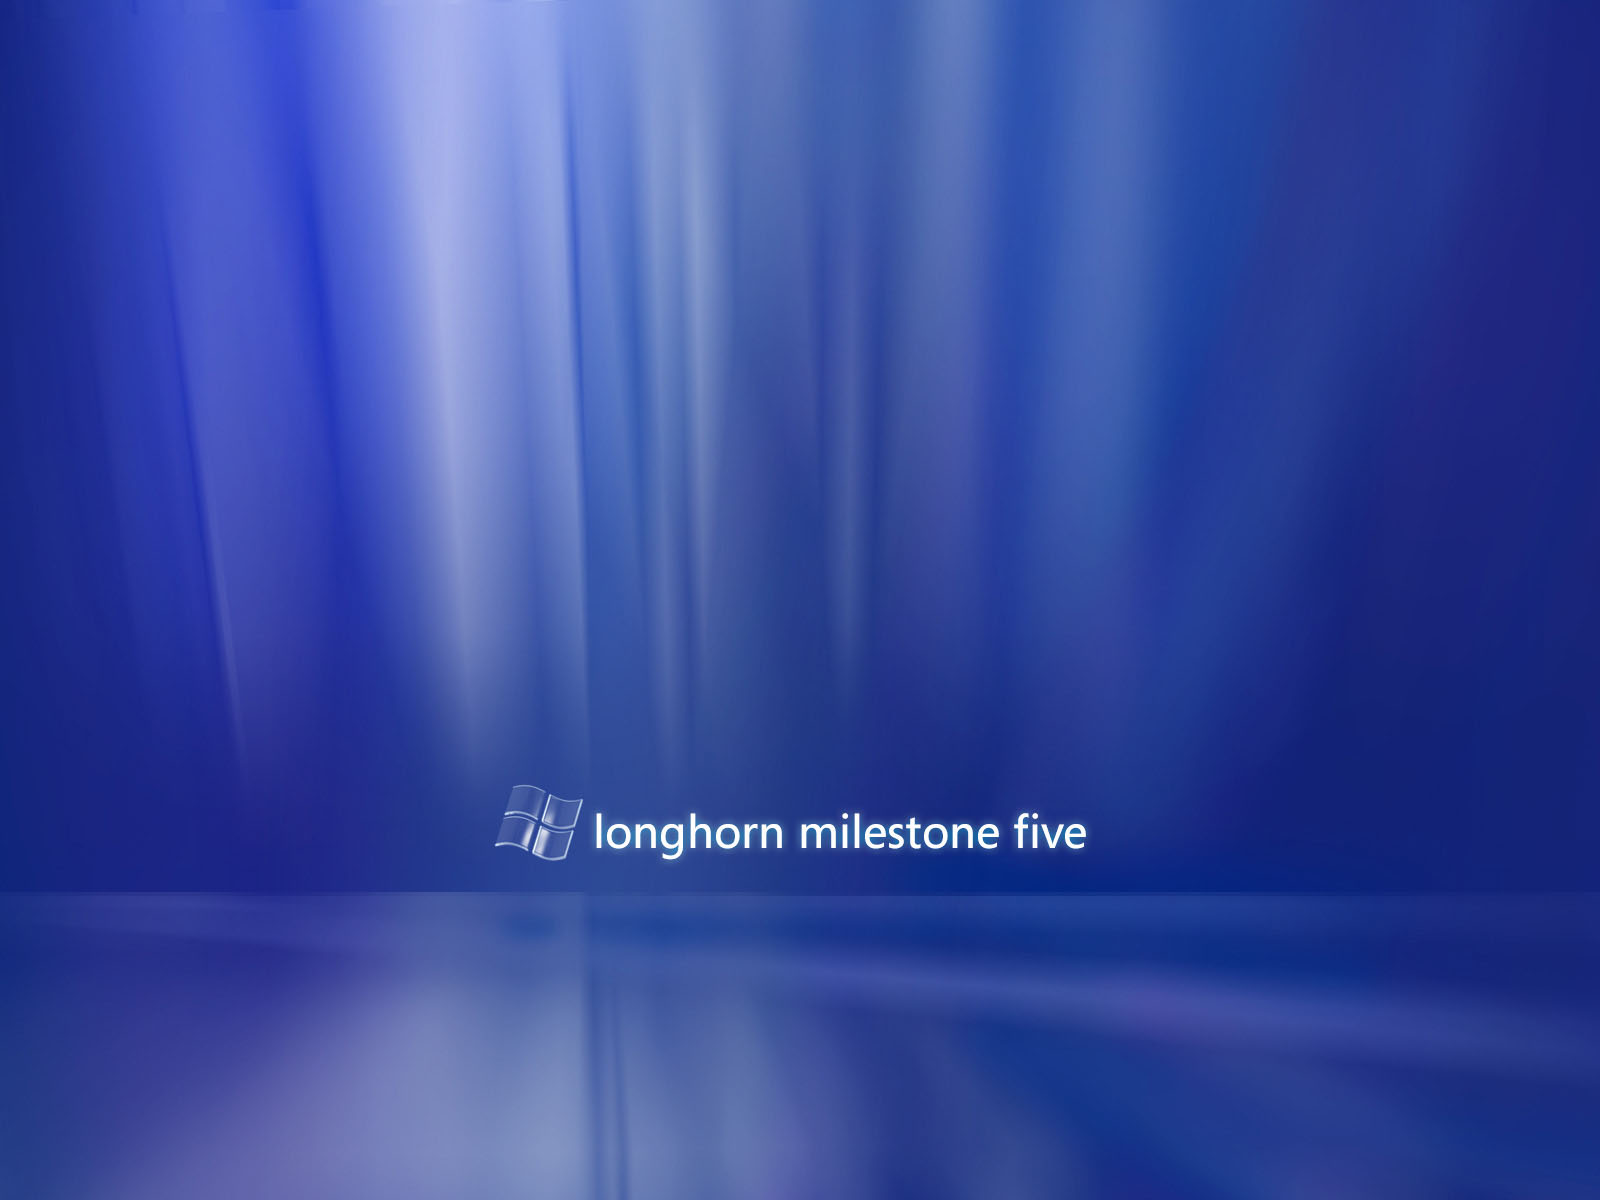 3d Animated Wallpaper For Android Mobile Longhorn Milestone Wallpapers Longhorn Milestone Stock